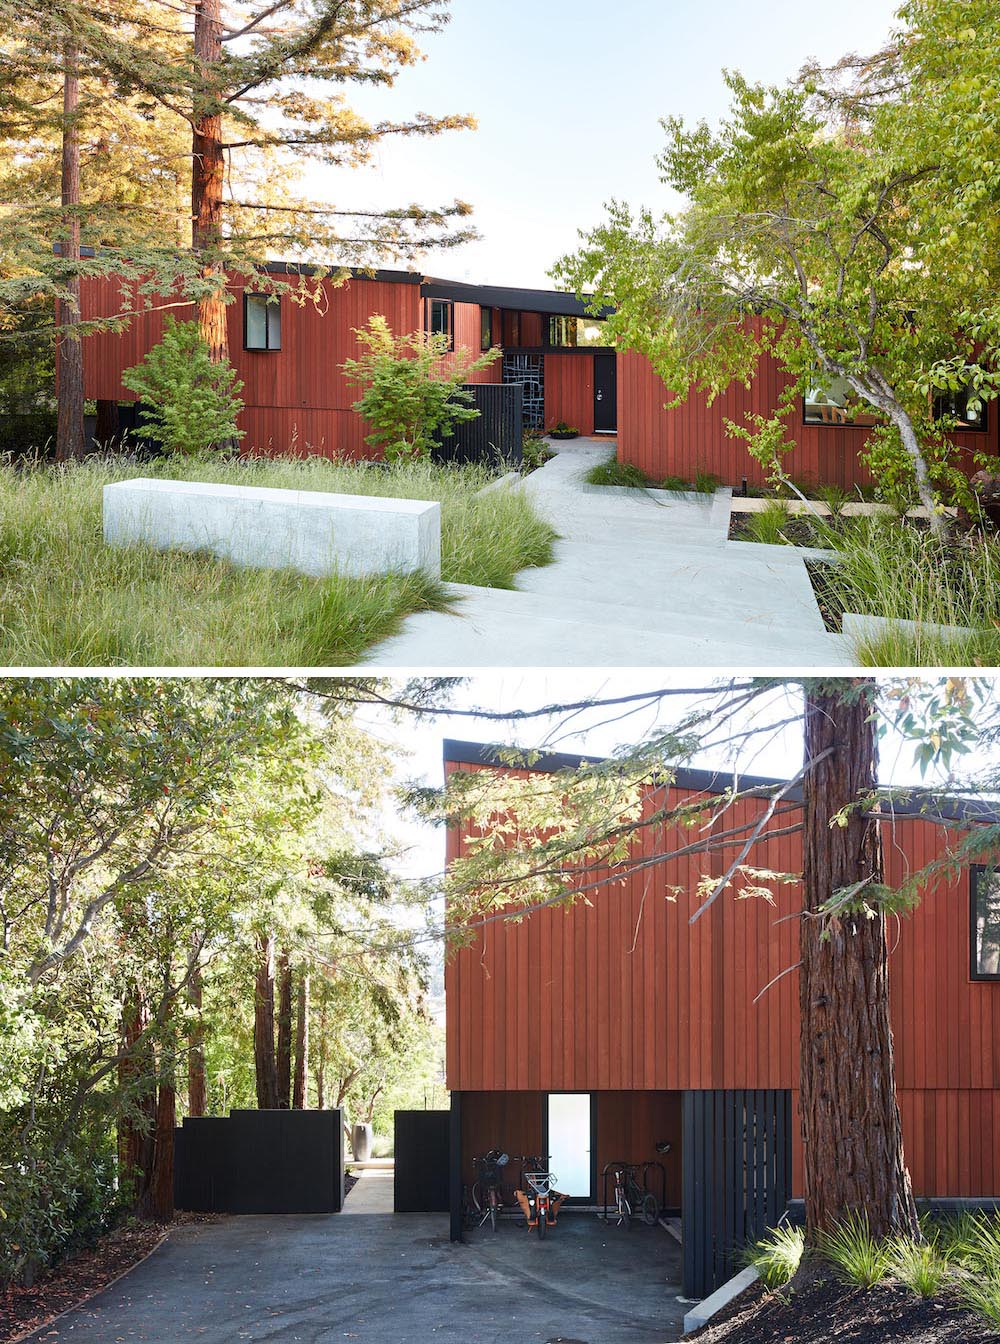 A contemporary remodel to bring the house into the 21st century and provide the living area needed for the homeowners.